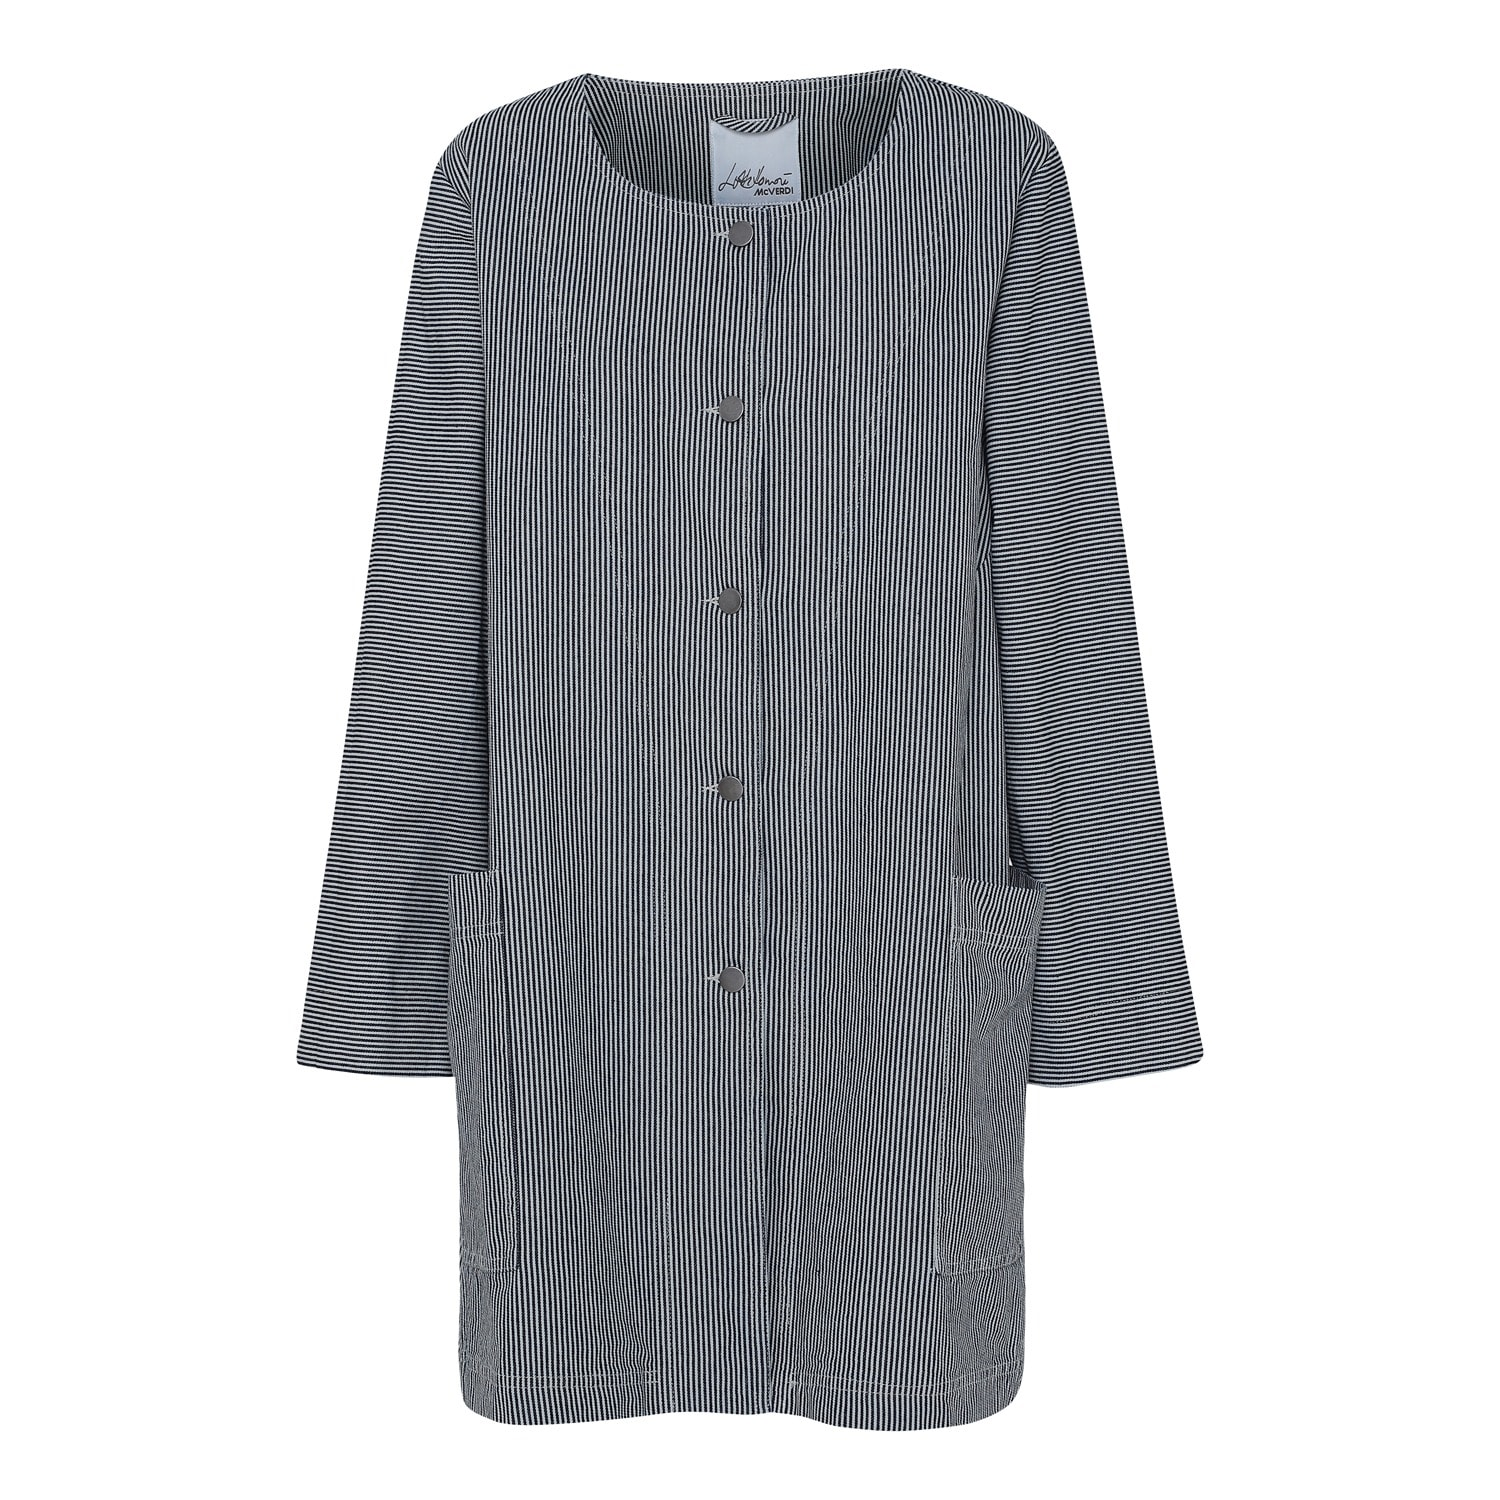 fashion women/'s stank collar wool blend double breasted long trench coat sz B506